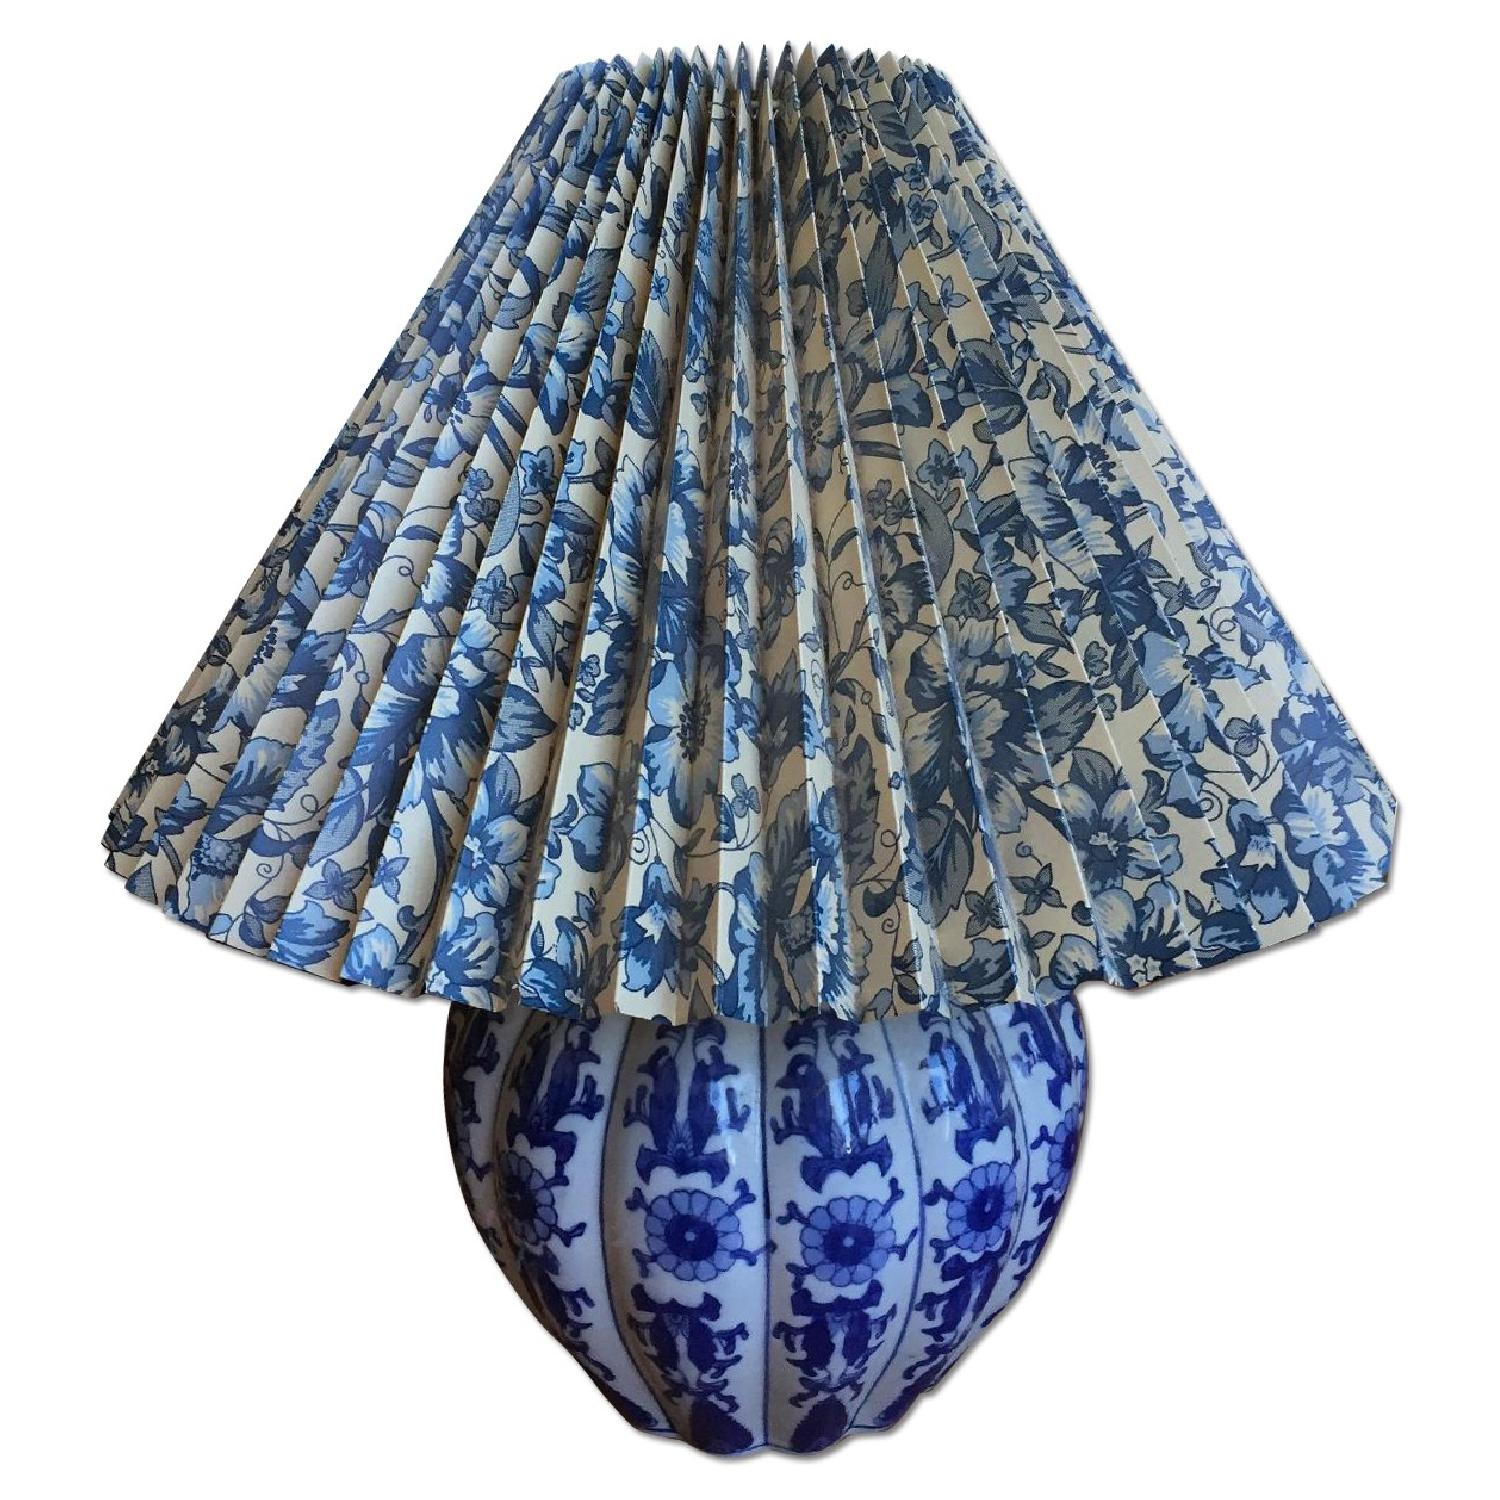 Blue & White Porcelain Table Lamp with Shade - image-0